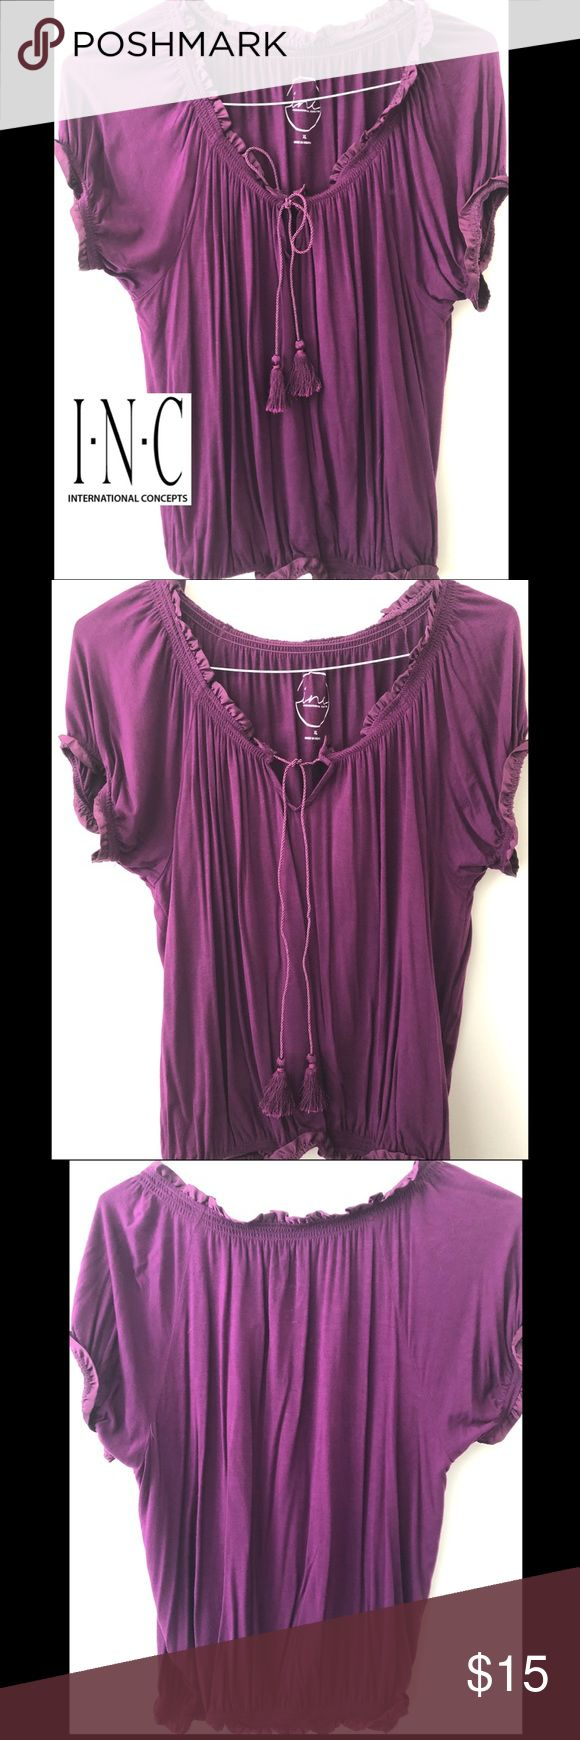 INC. FRONT TASSEL TIE TEE 💜 INC. PURPLE TEE- tassels tie in front- can be worn several ways (bow, tied or open). Adorable paired with jeans 💜 INC International Concepts Tops Tees - Short Sleeve